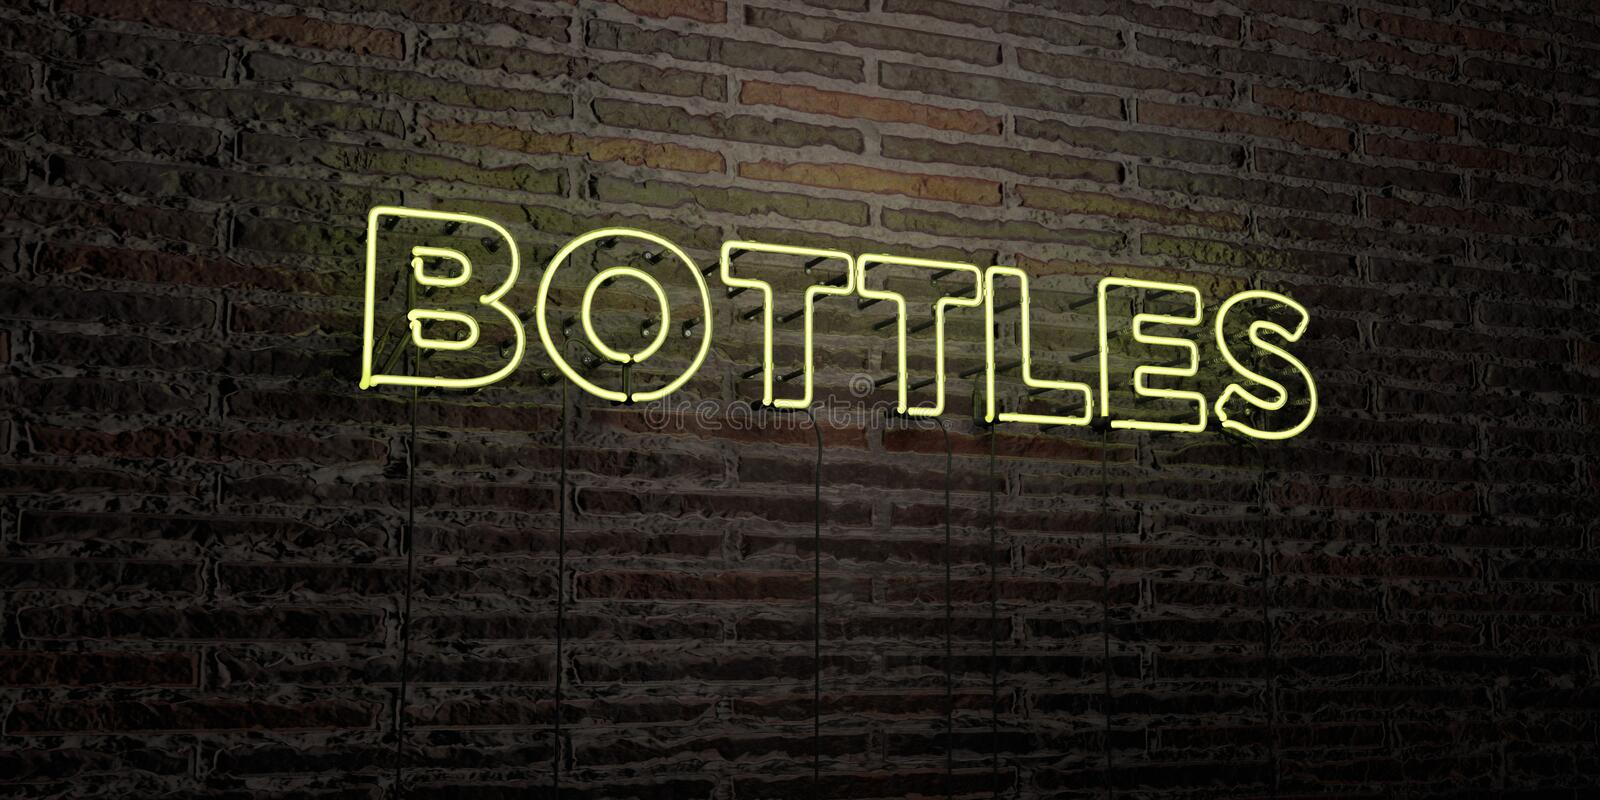 BOTTLES -Realistic Neon Sign on Brick Wall background - 3D rendered royalty free stock image stock illustration